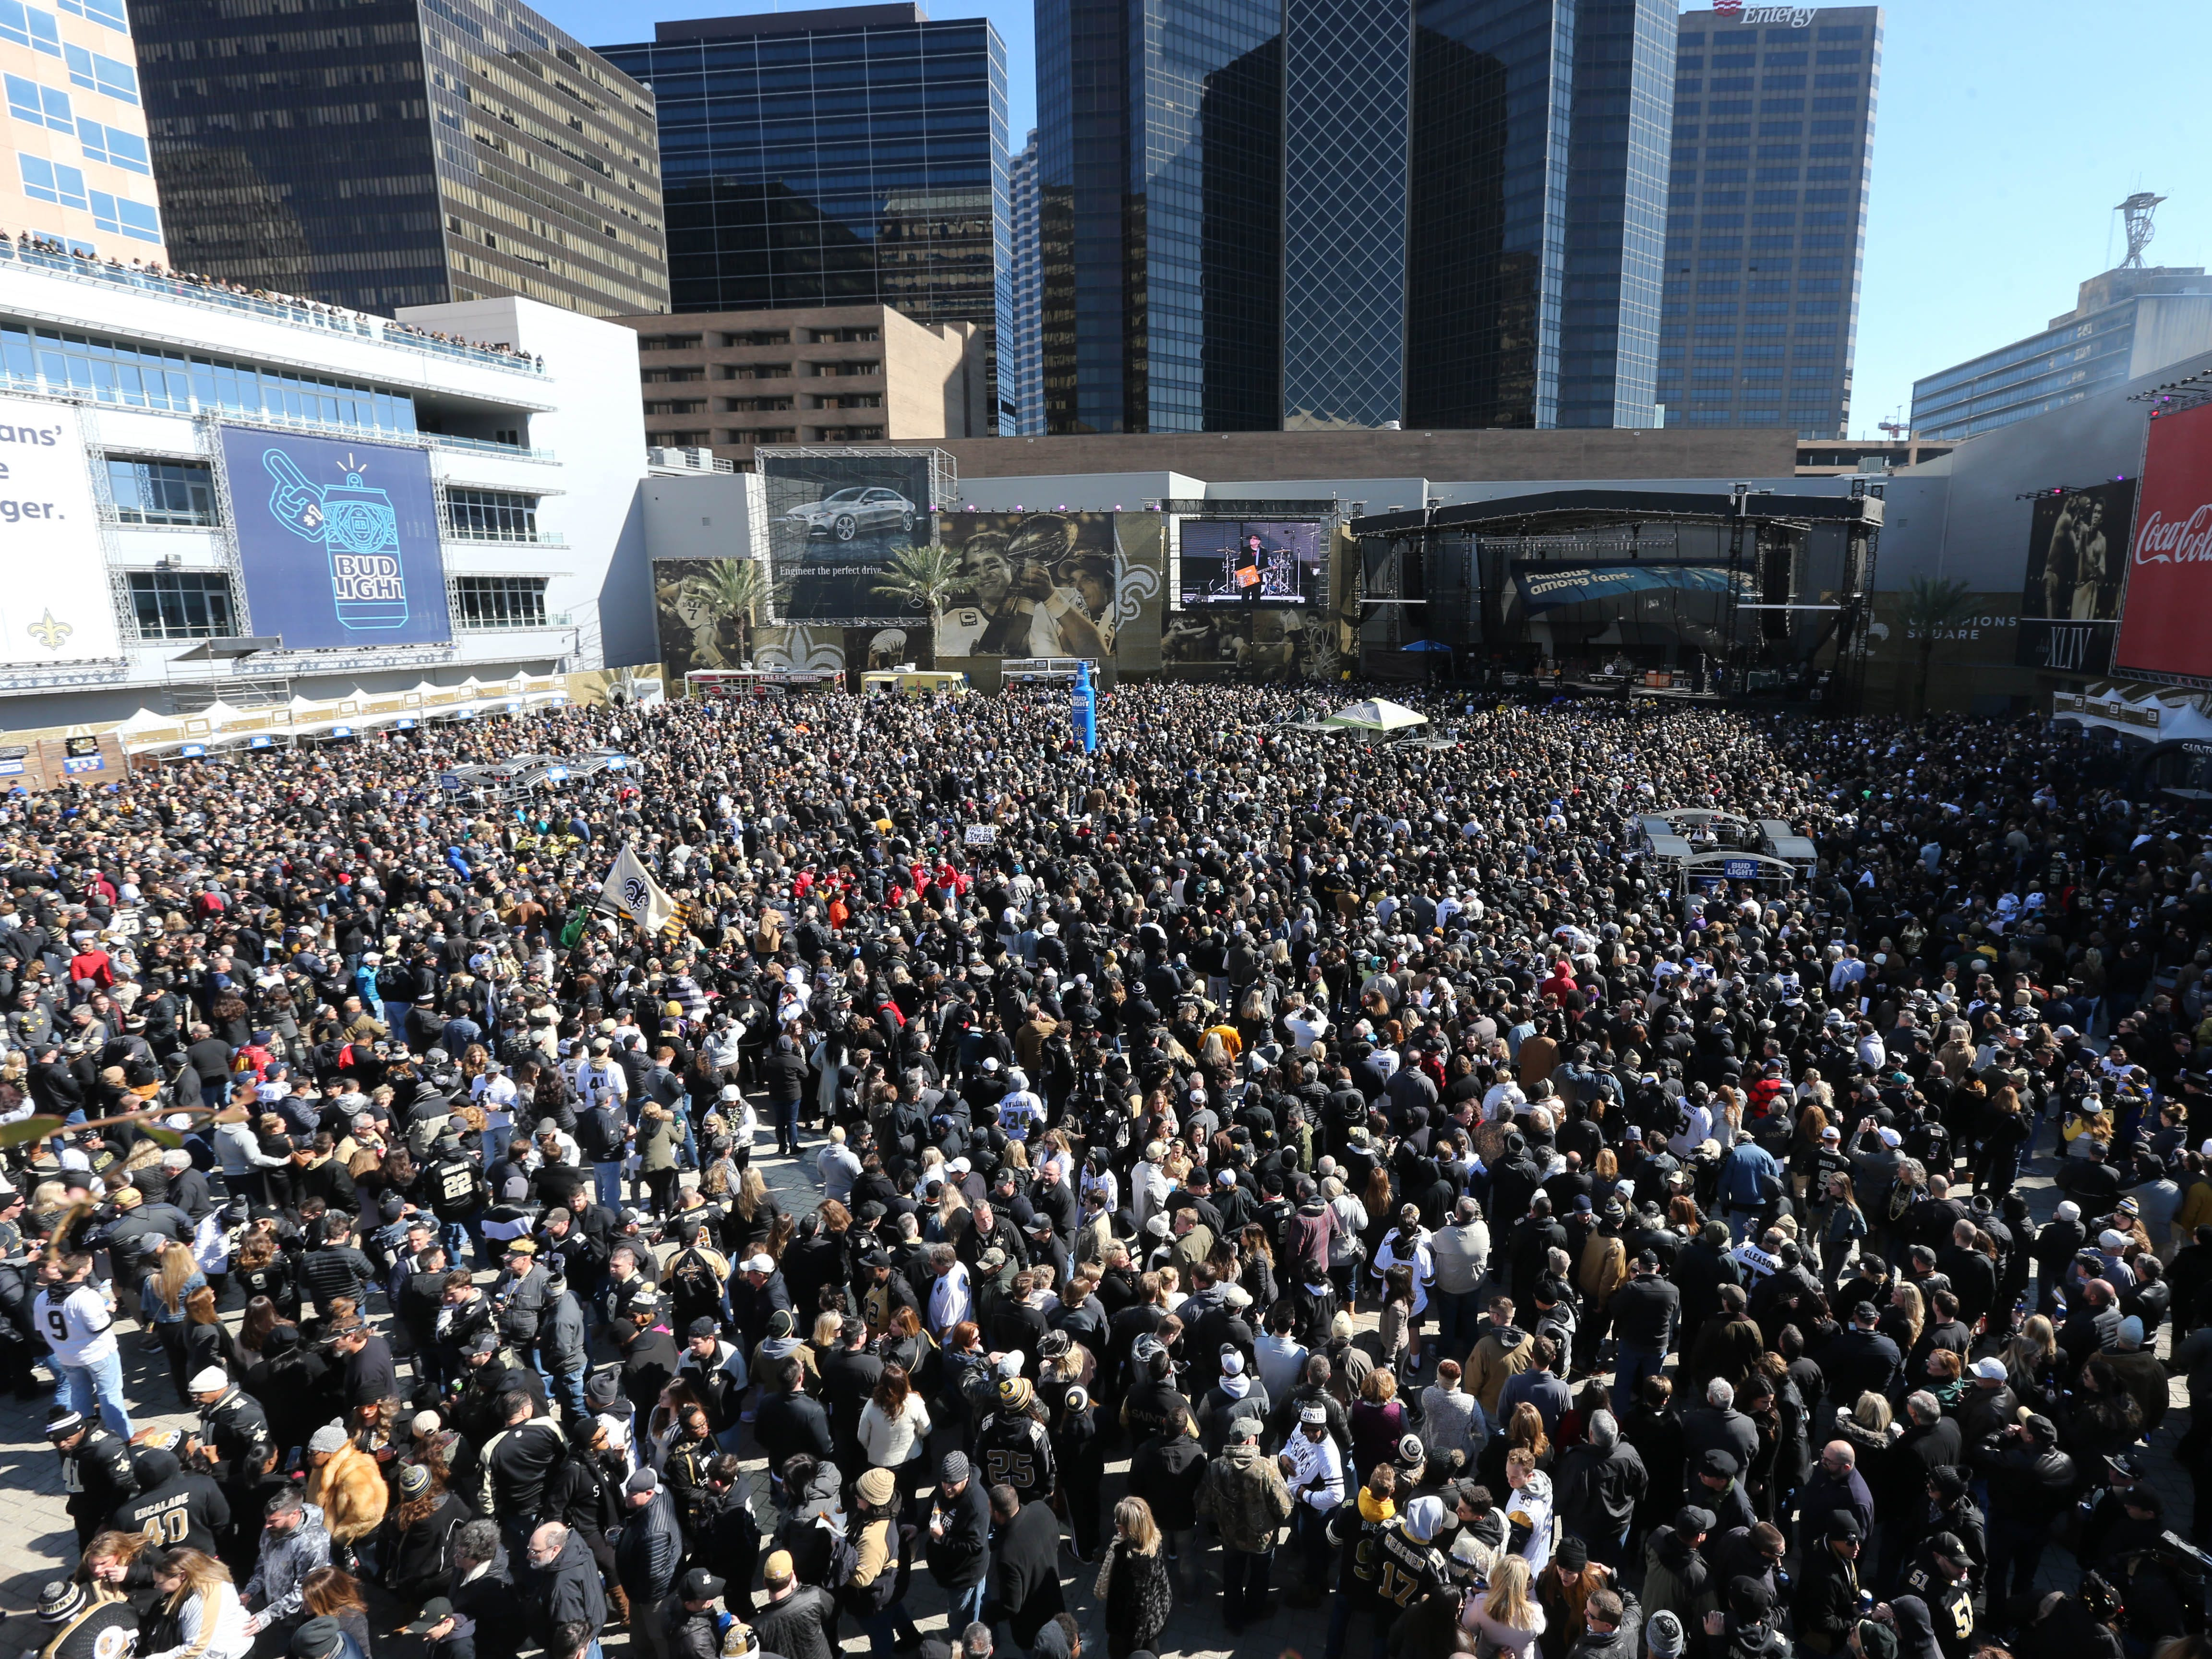 Jan 20, 2019; New Orleans, LA, USA; Fans fill Champions Square outside the Mercedes-Benz Superdome before the NFC Championship game between the Saints and the Los Angeles Rams. Mandatory Credit: Chuck Cook-USA TODAY Sports